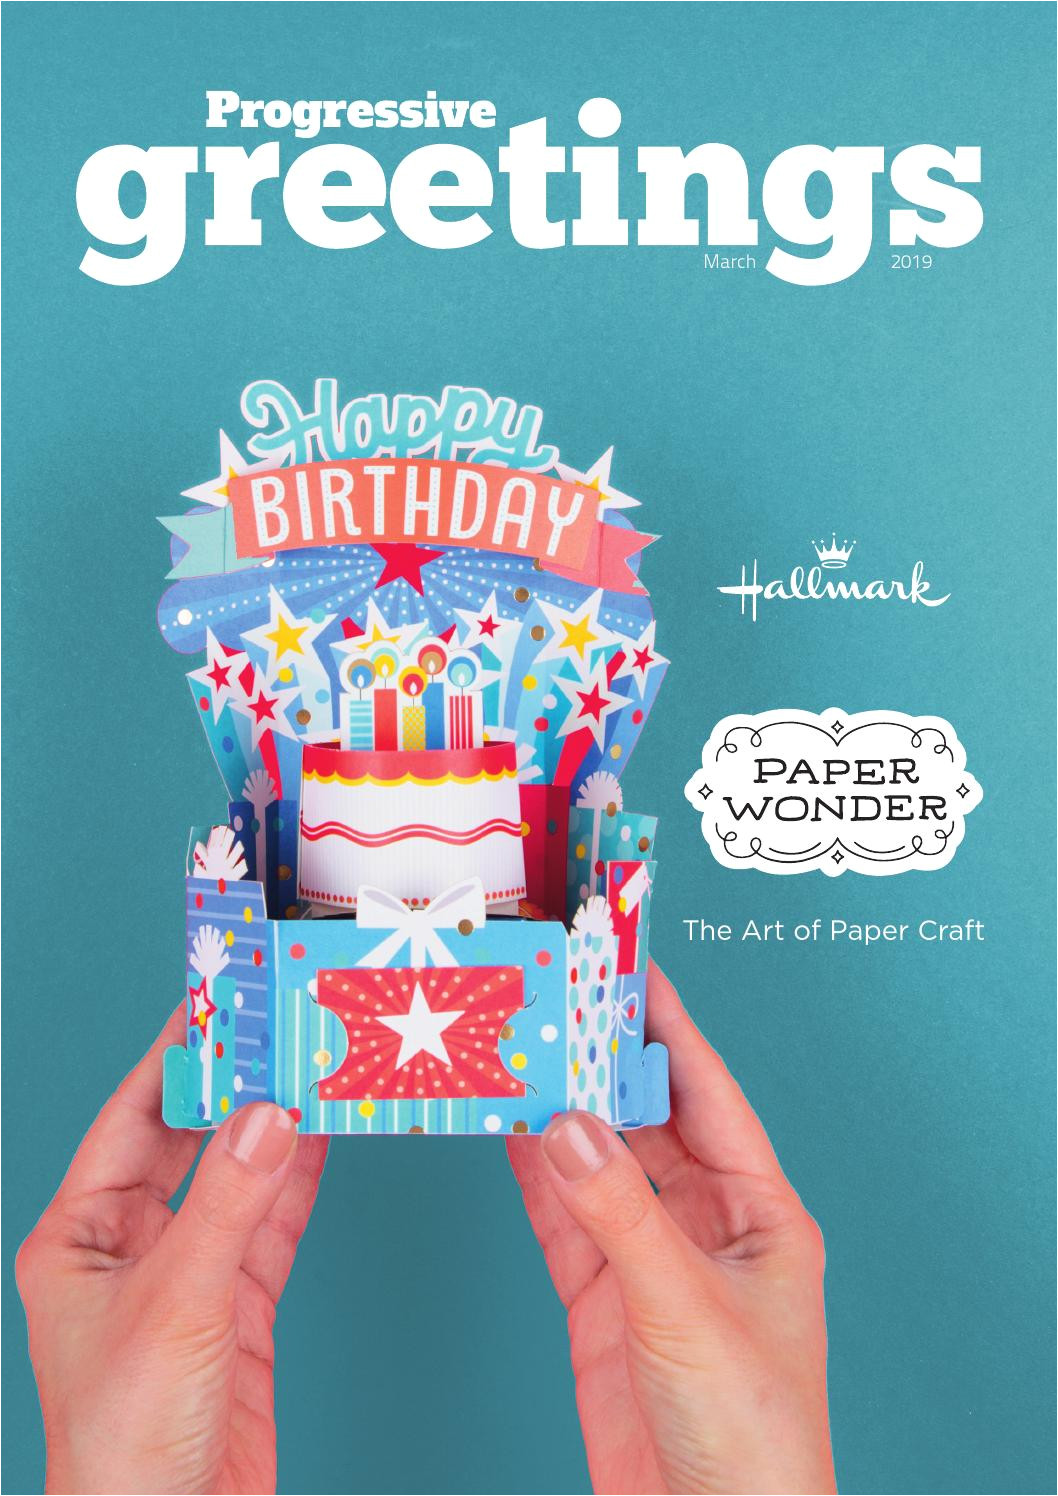 Greeting Card Companies New Zealand Progressive Greetings March 2019 by Max Media Group issuu